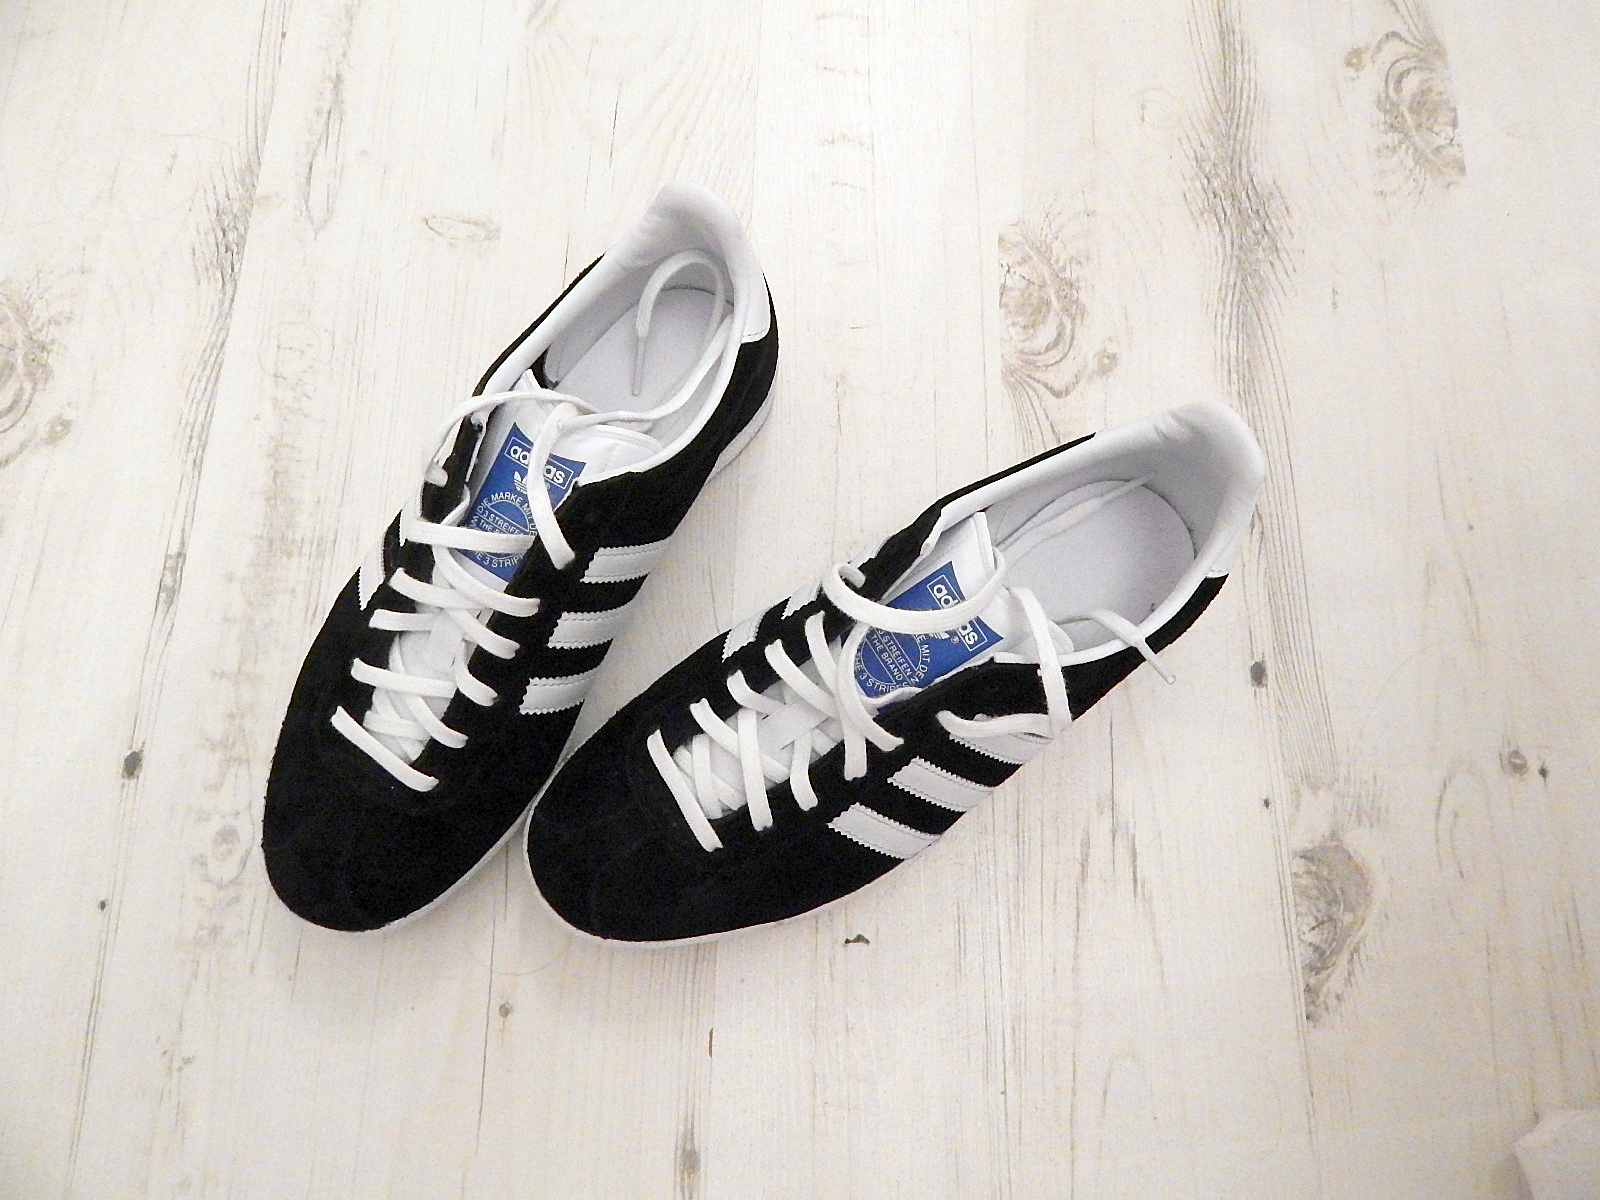 Adidas Gazelle Trainers Review Schuh